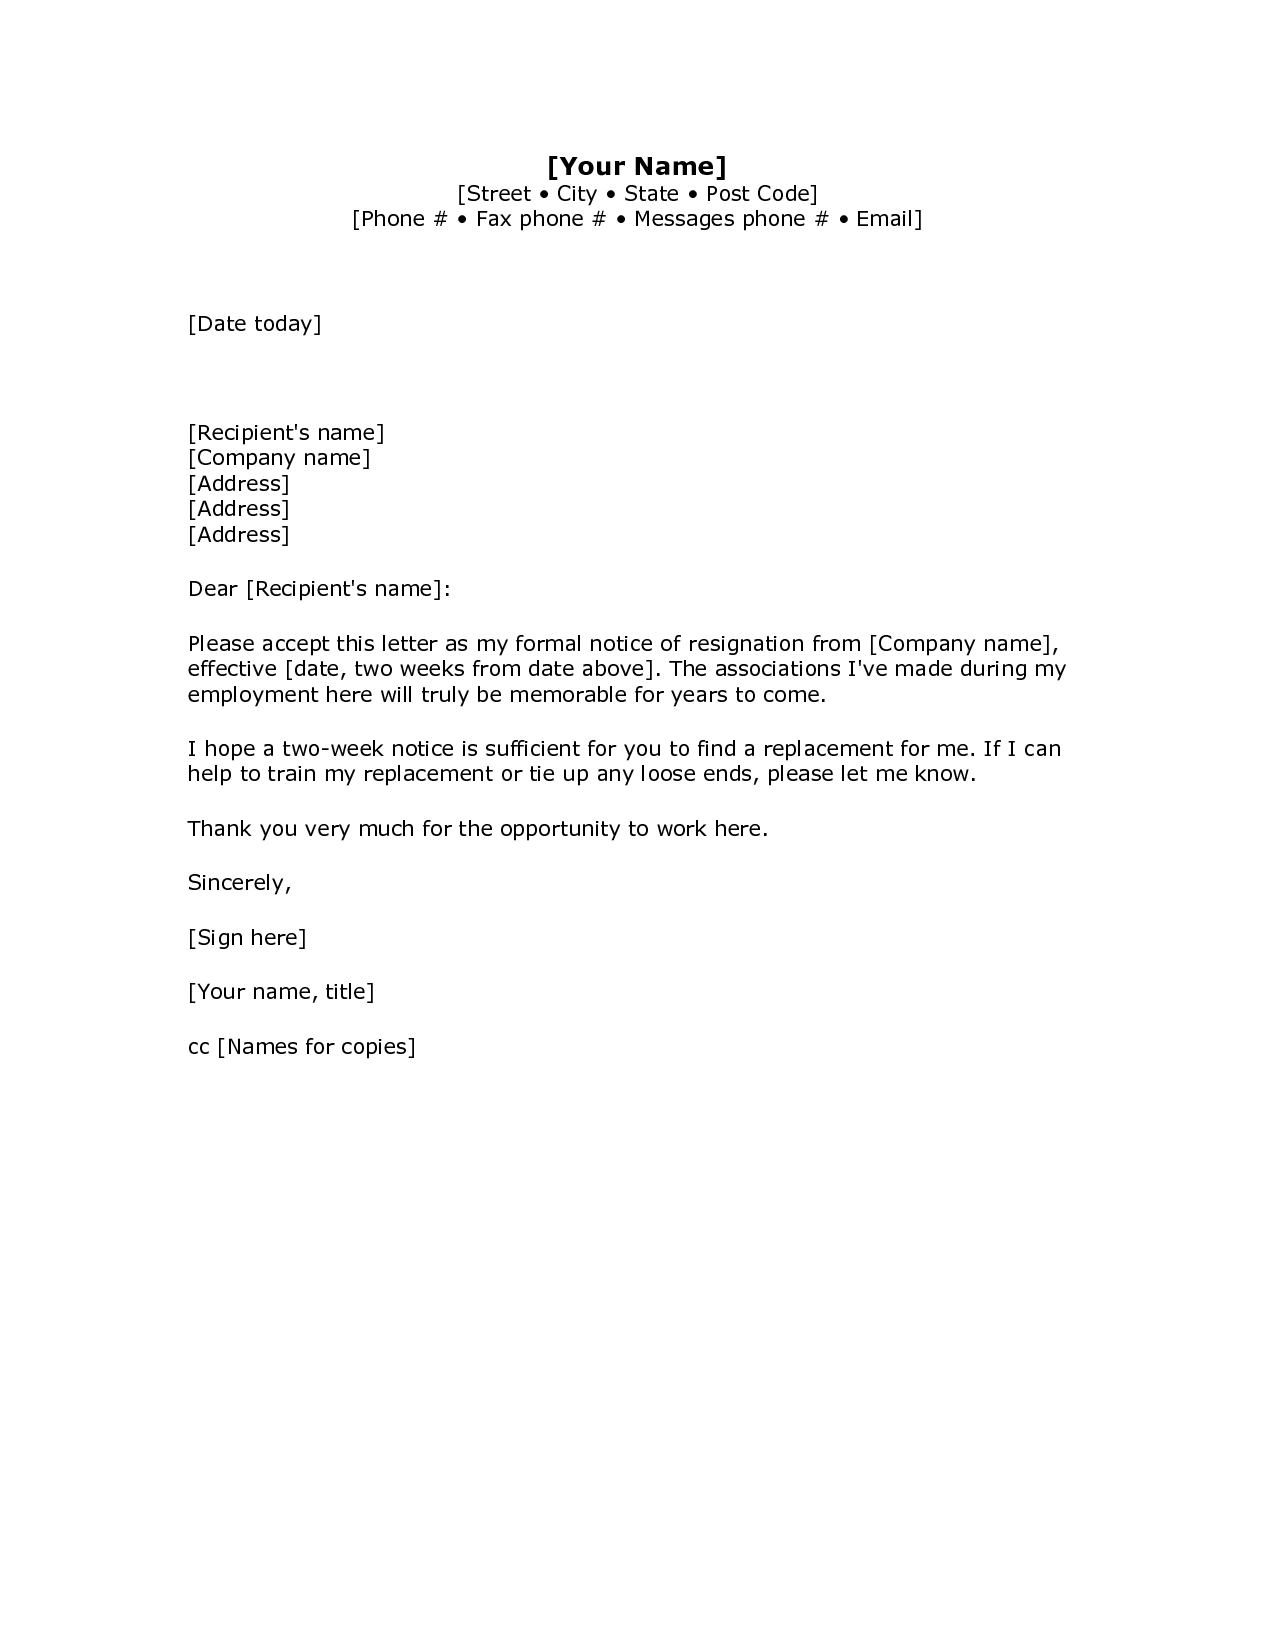 Iou Letter Template - 2 Weeks Notice Letter Resignation Letter Week Notice Words Hdwriting